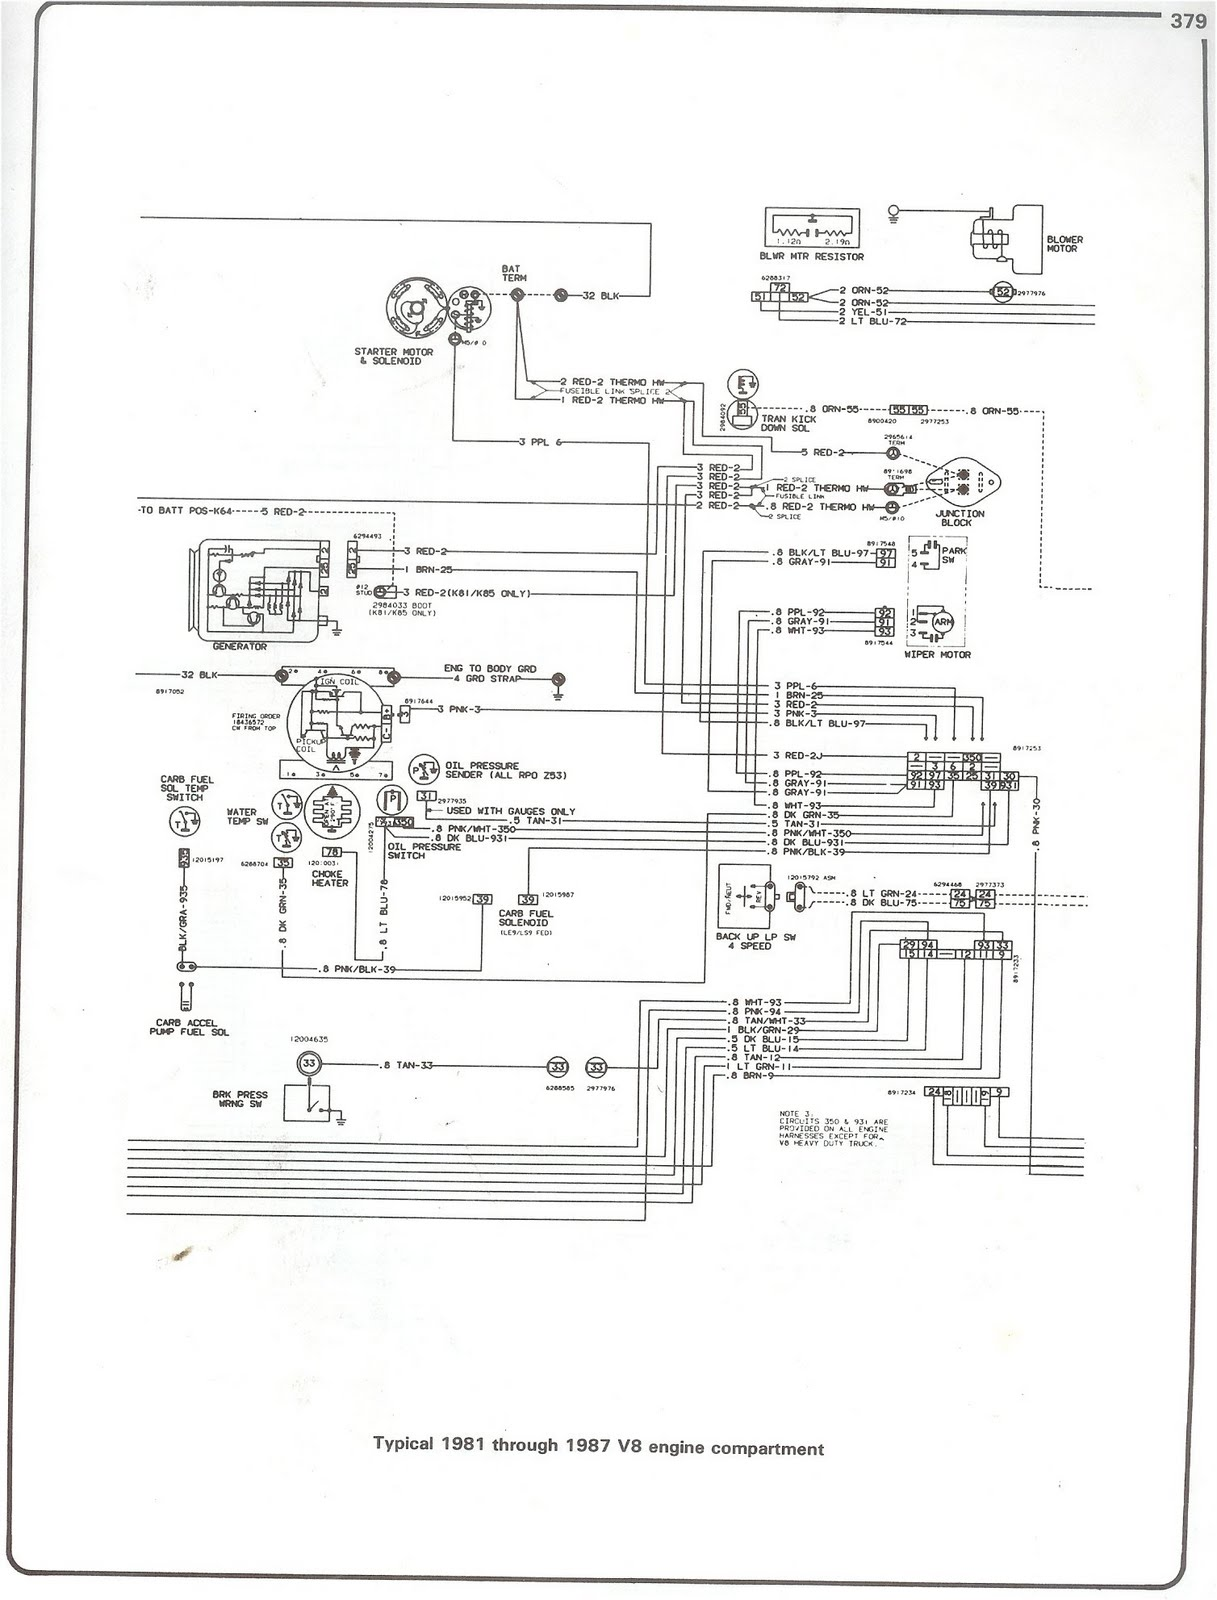 87 Chevy K5 Wiring Diagram Manual Of 1981 Fiat Free Auto 1987 Chevrolet V8 Truck